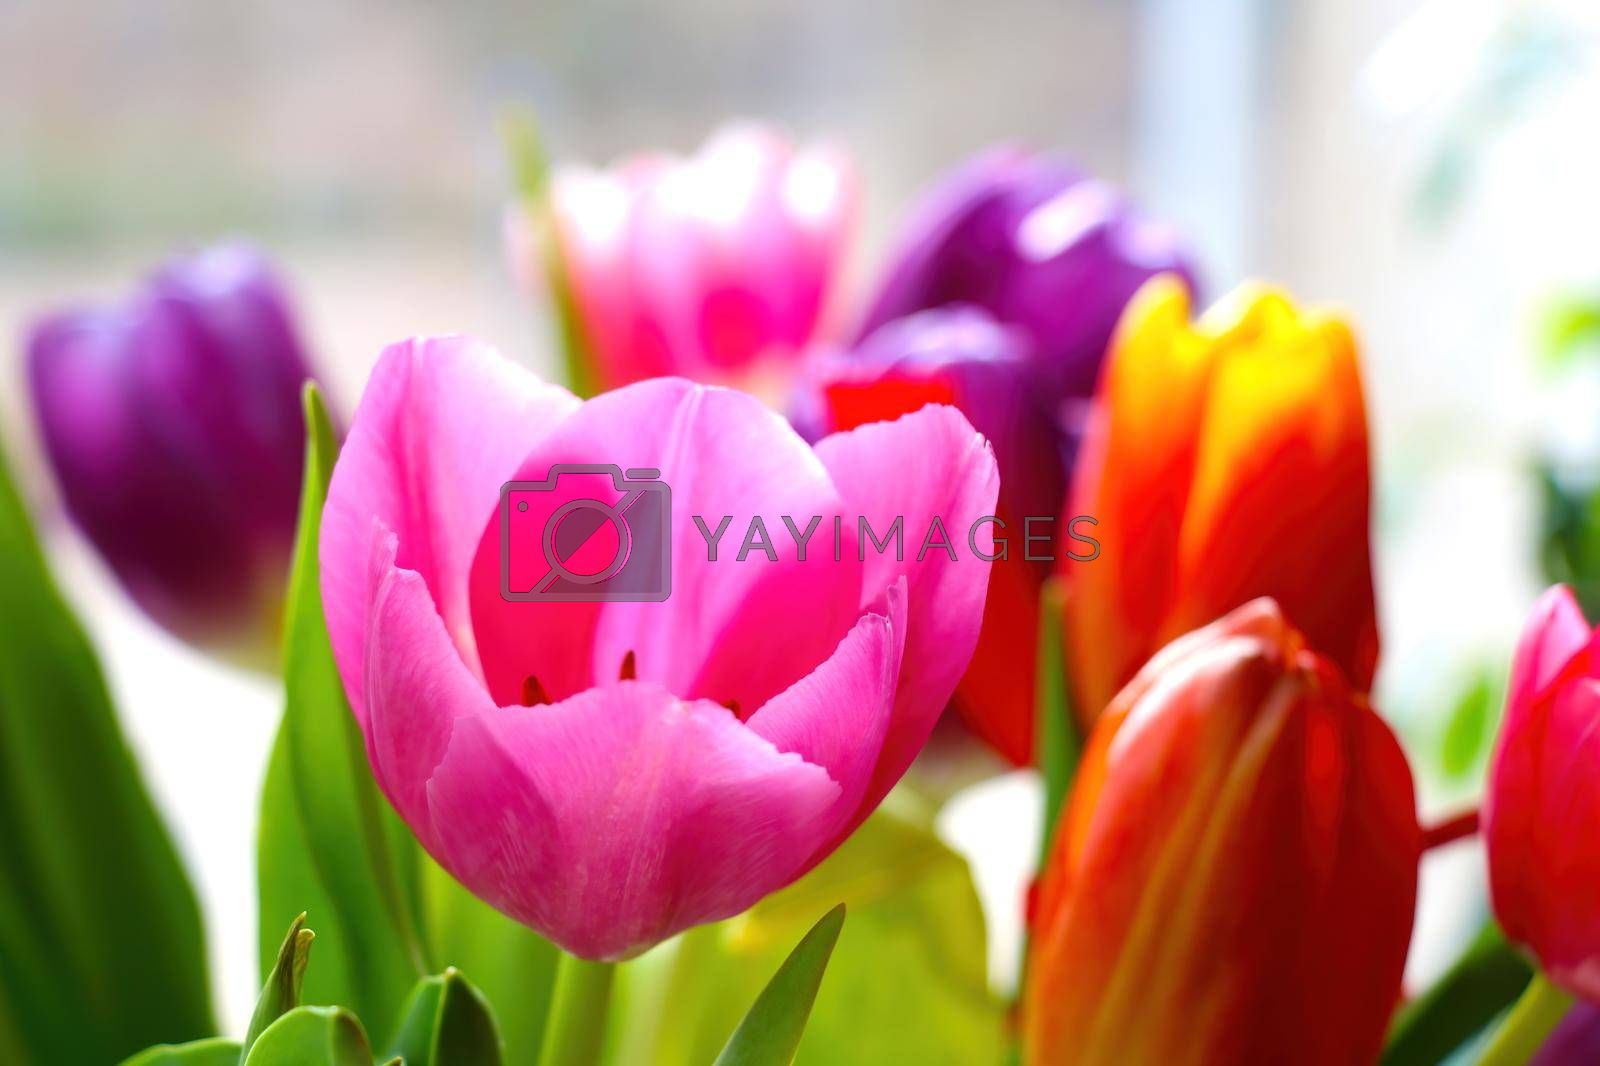 Royalty free image of Close-up on a blooming fragrant tulip. Fresh flowers. by kip02kas